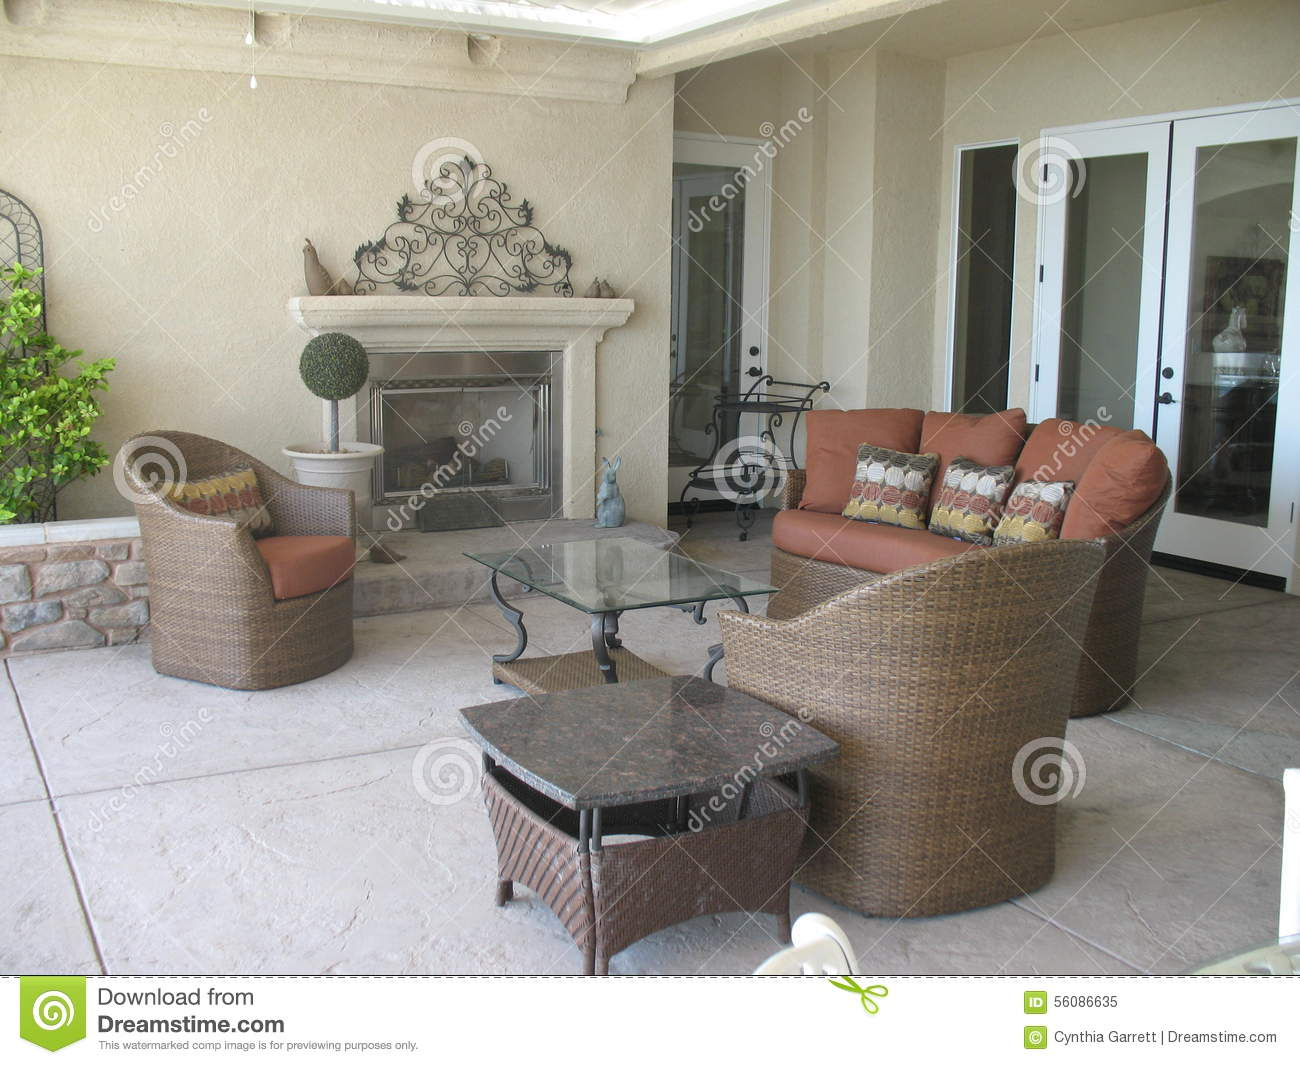 Outdoor Patio With Fireplace And Wicker Furniture